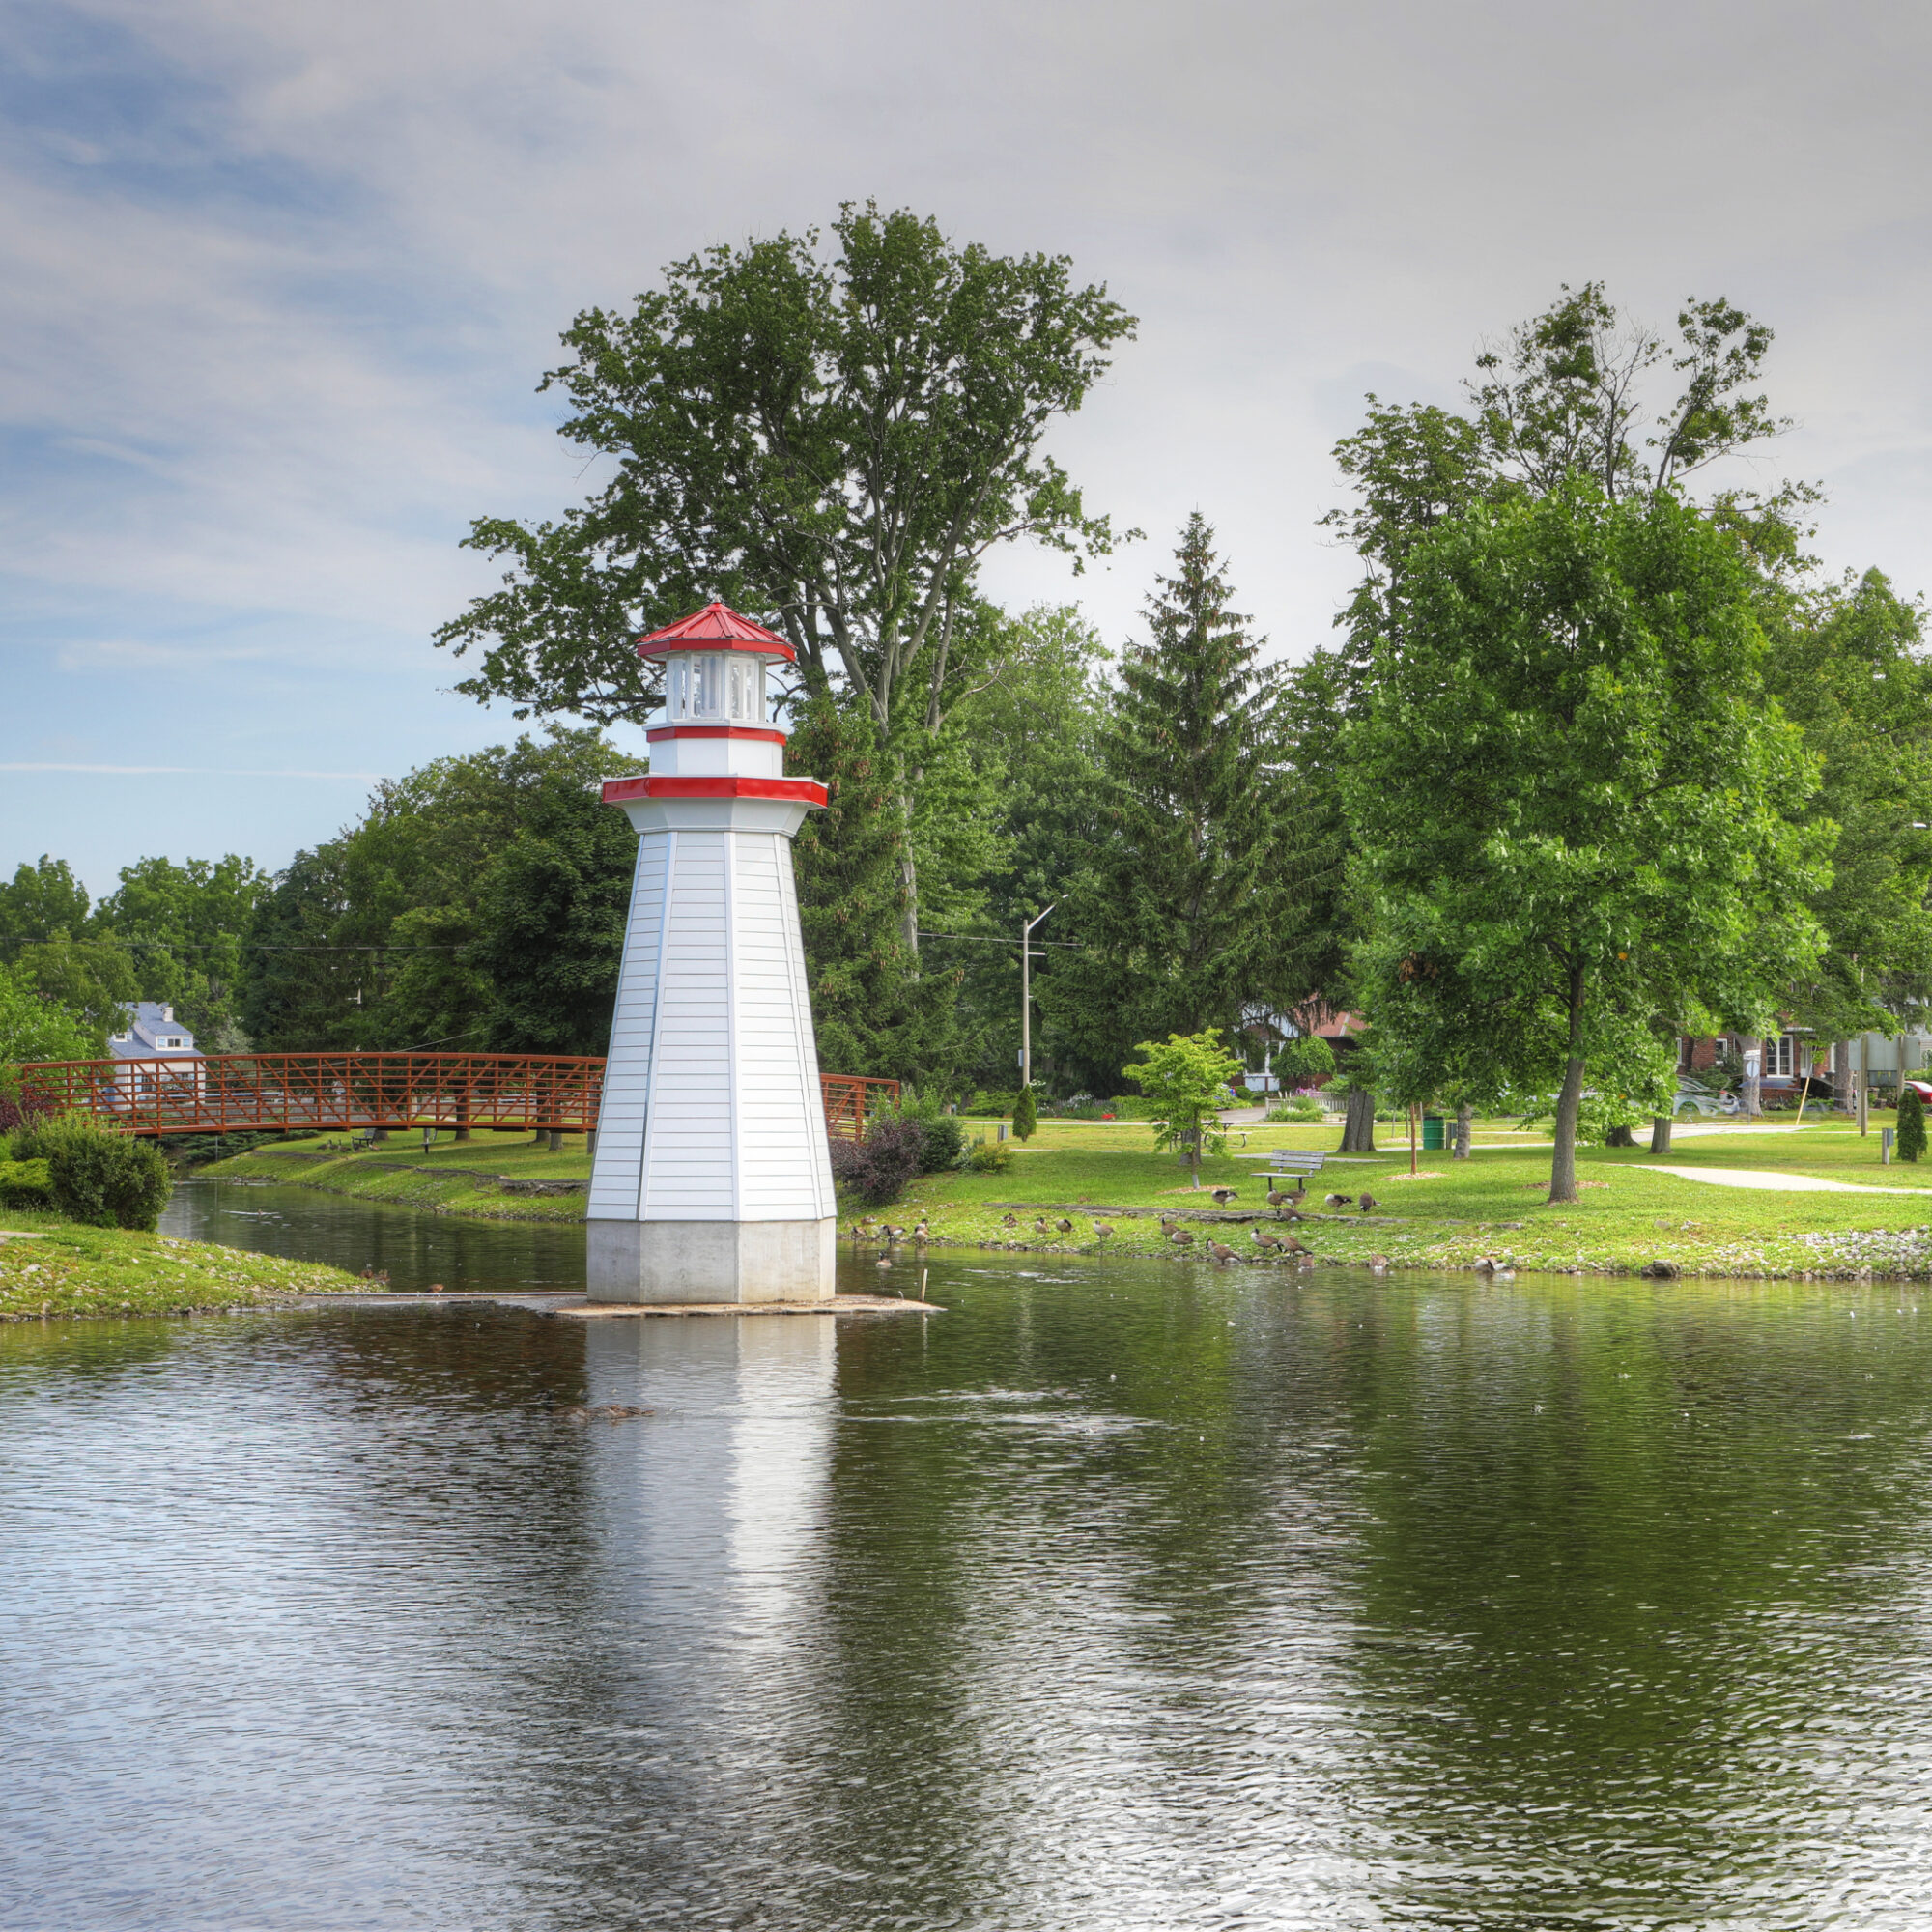 Wellington Park in the quaint town of Simcoe, Ontario.